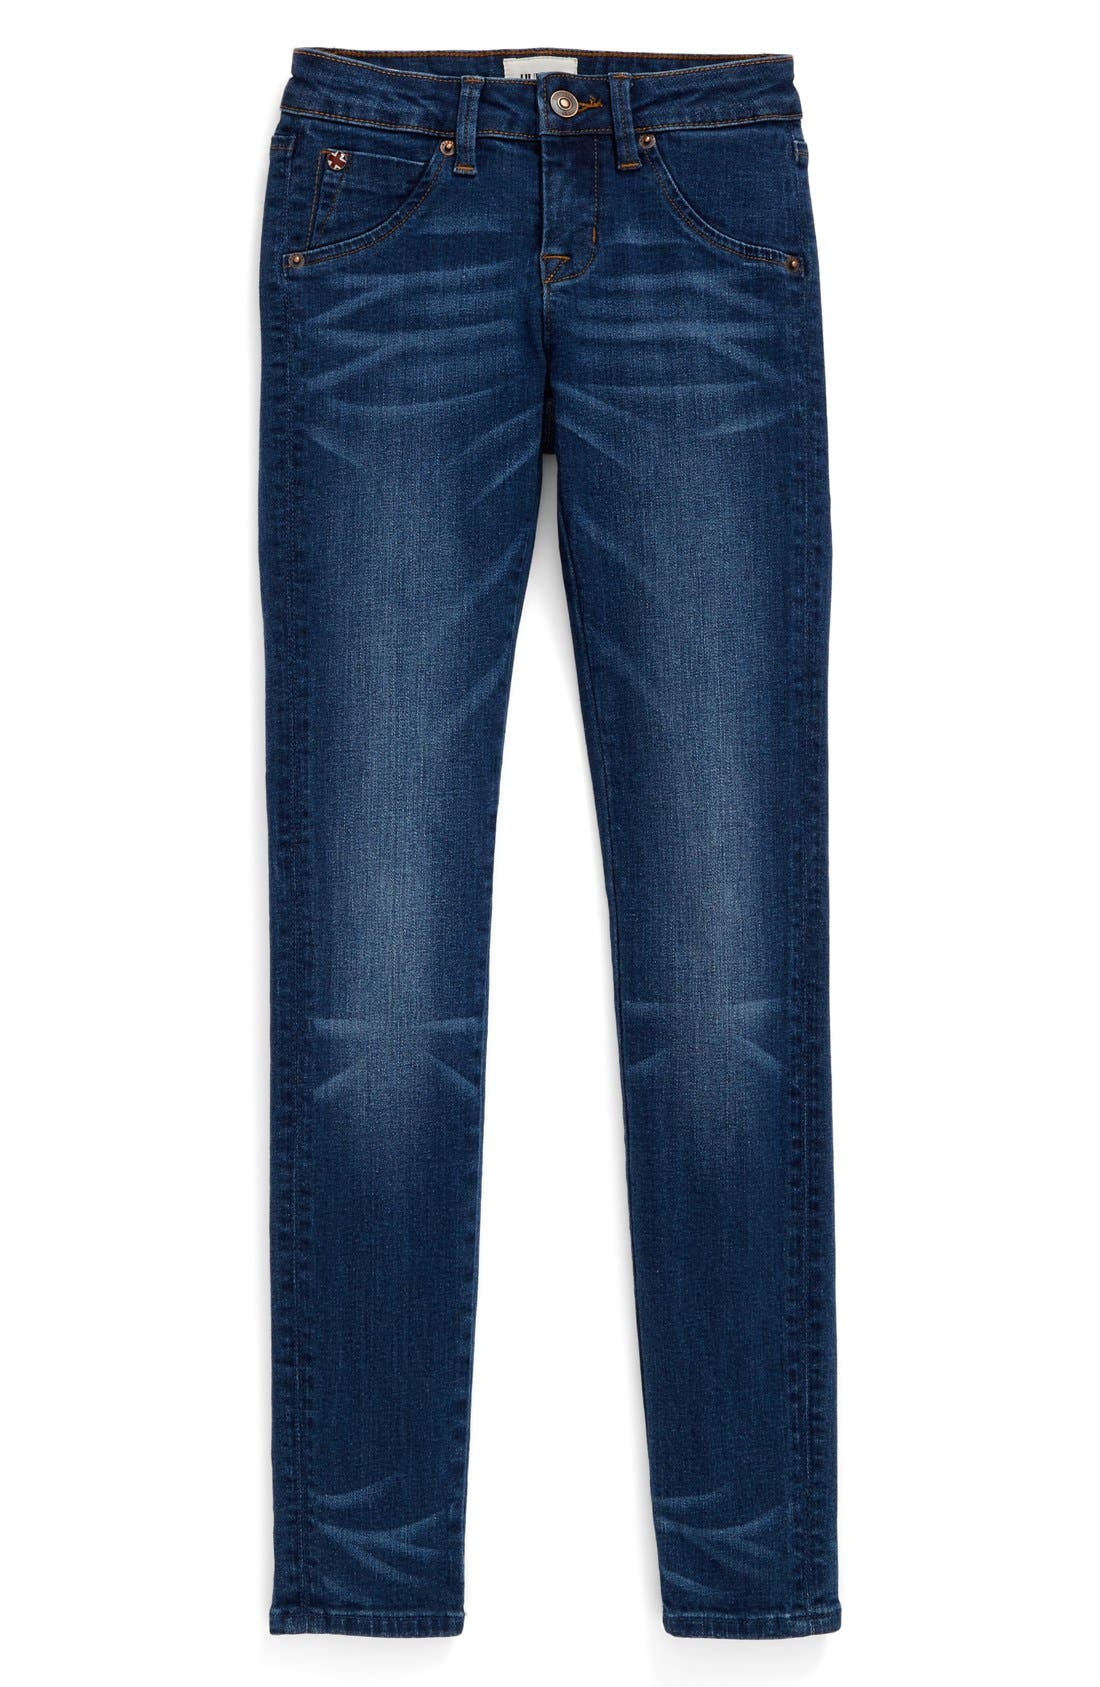 'Collin' Skinny Jeans,                         Main,                         color, Dark Indigo Sand